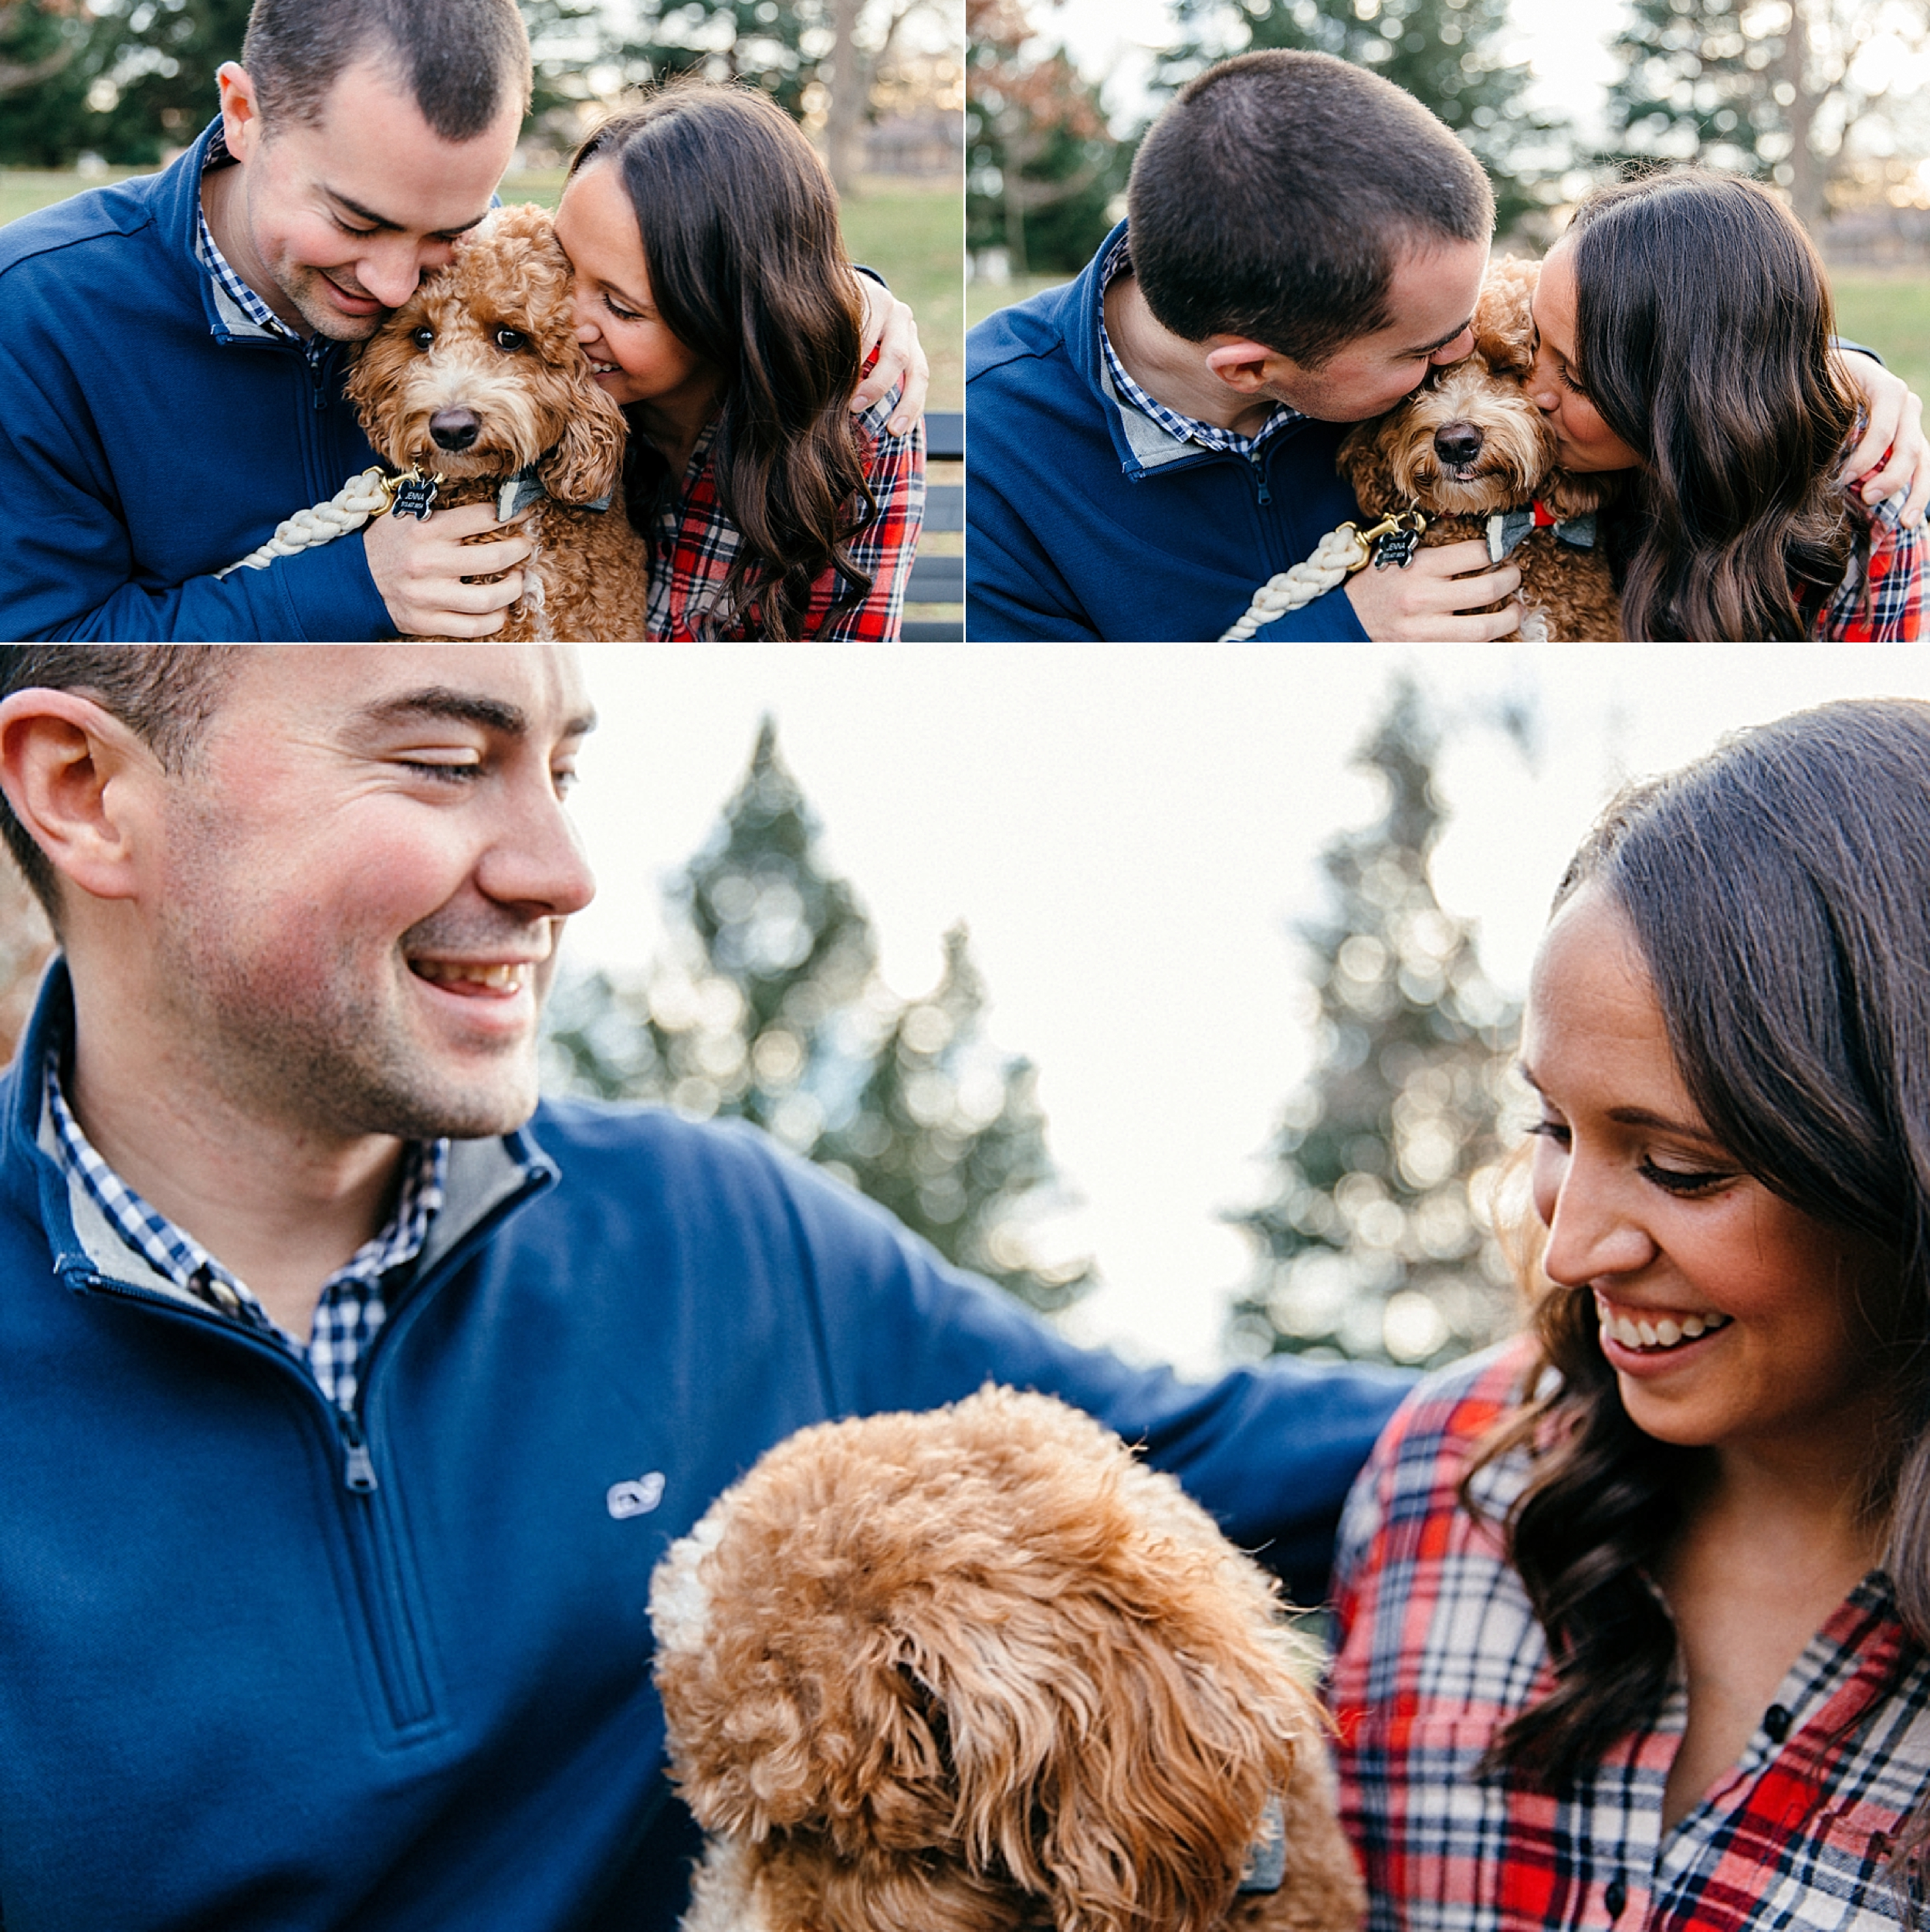 midwest-michigan-indiana-engagement-and-wedding-photographer-session-in-columbus-ohio_0001.jpg